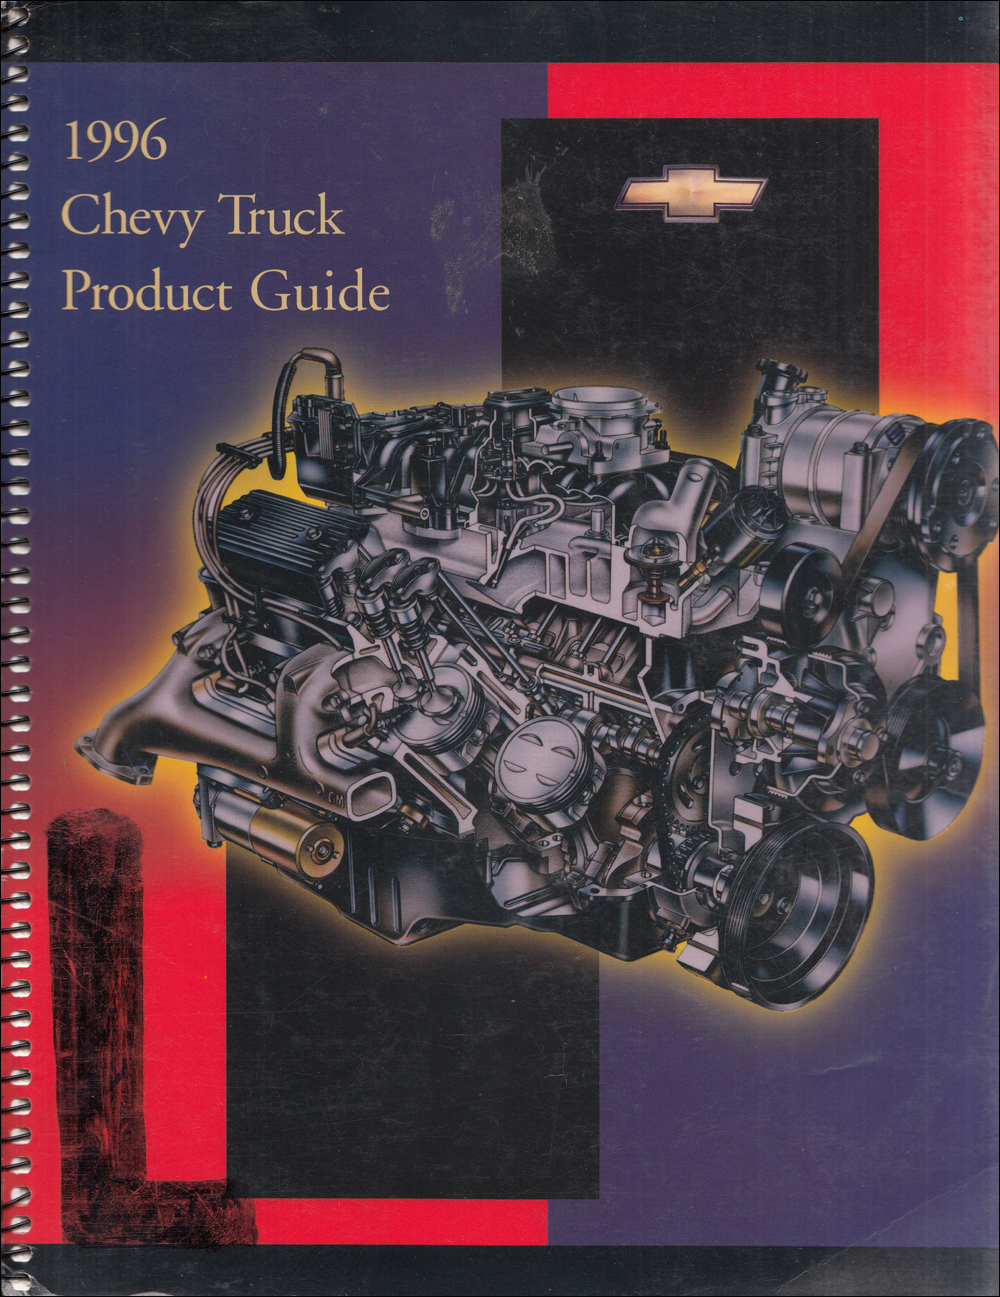 1996 Chevrolet Truck Data Book Dealer Album Original